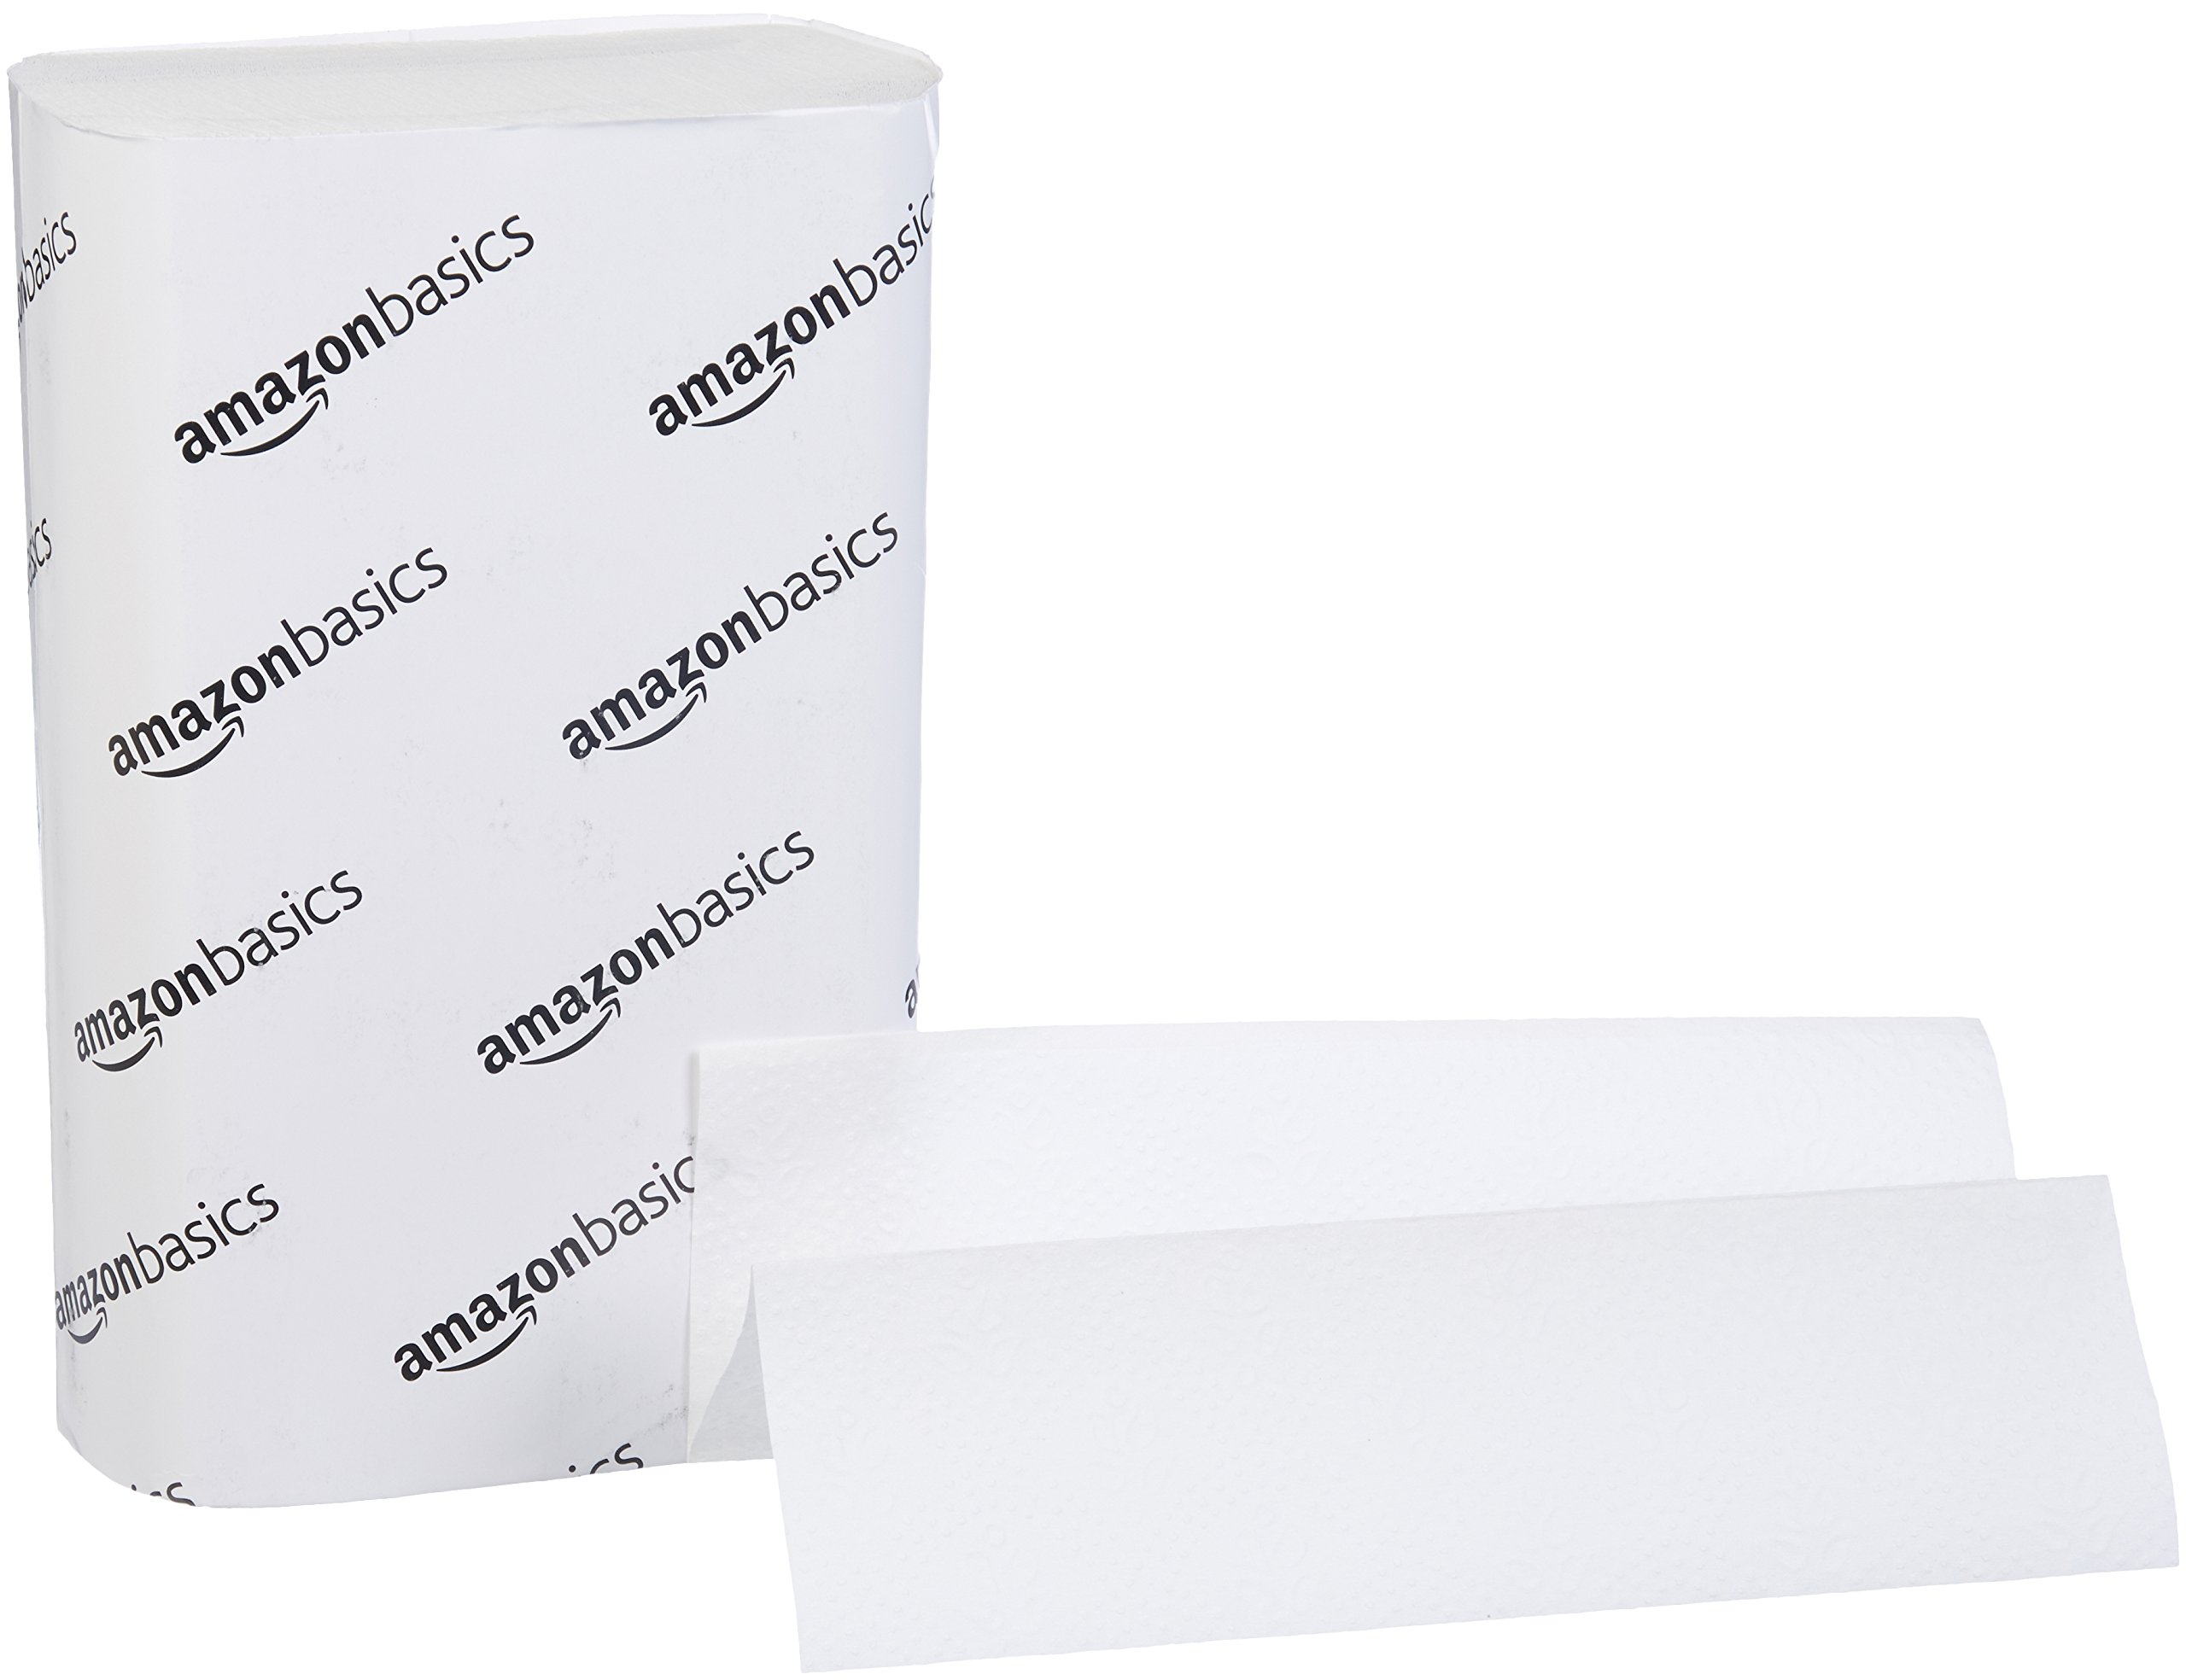 AmazonBasics Professional Multifold Paper Towels for Businesses, White, 250 Towels per Pack, 16-Pack